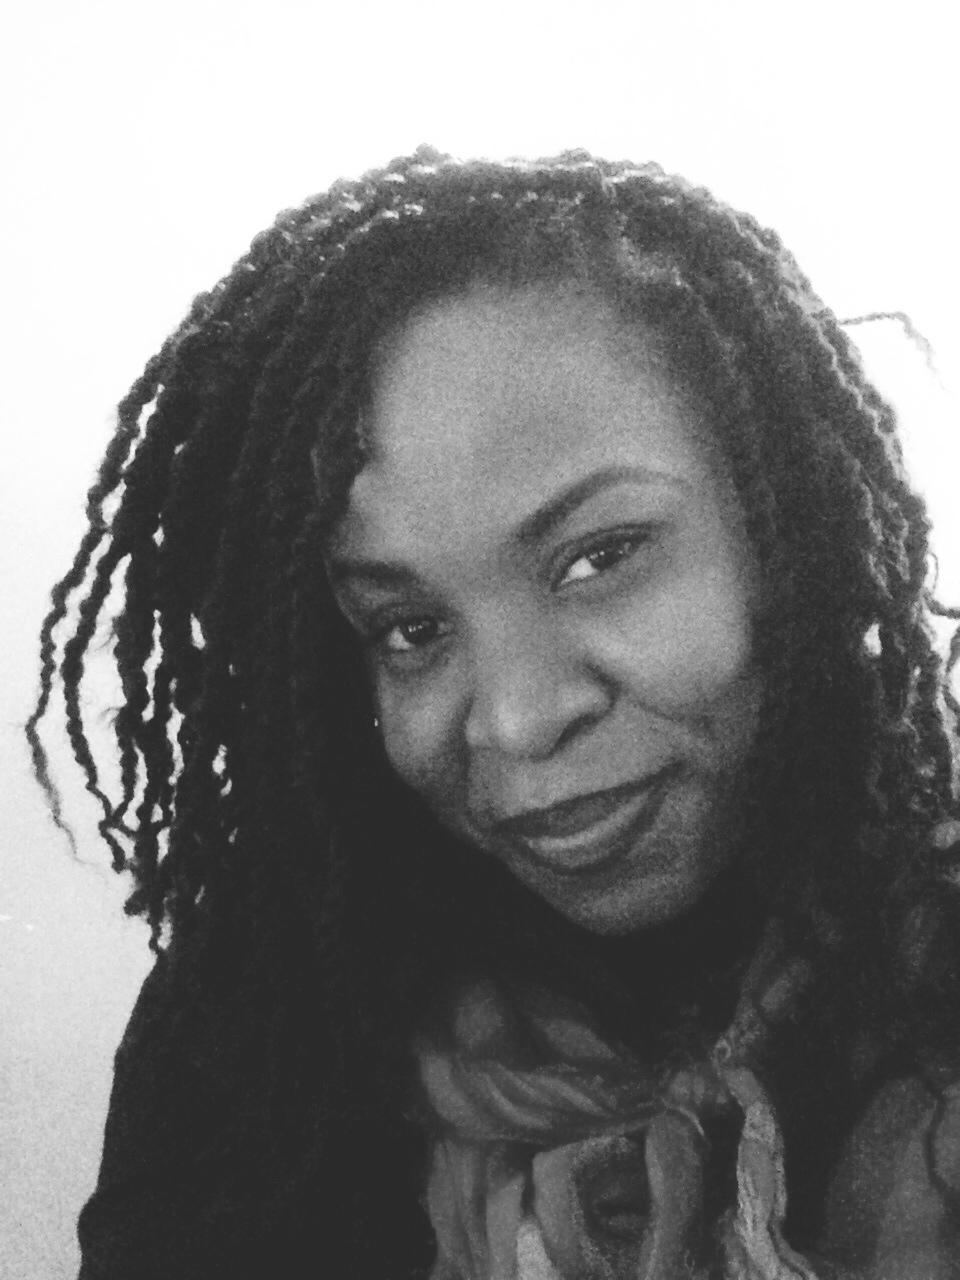 Sonia Godding Togobo  TV Editor & Doc Filmmakers  Sonia Godding Togobo is a veteran TV editor. To keep her sanity, she makes docs about the diverse Black Canadian experience. You can check her out on Twitter at @sgoddis